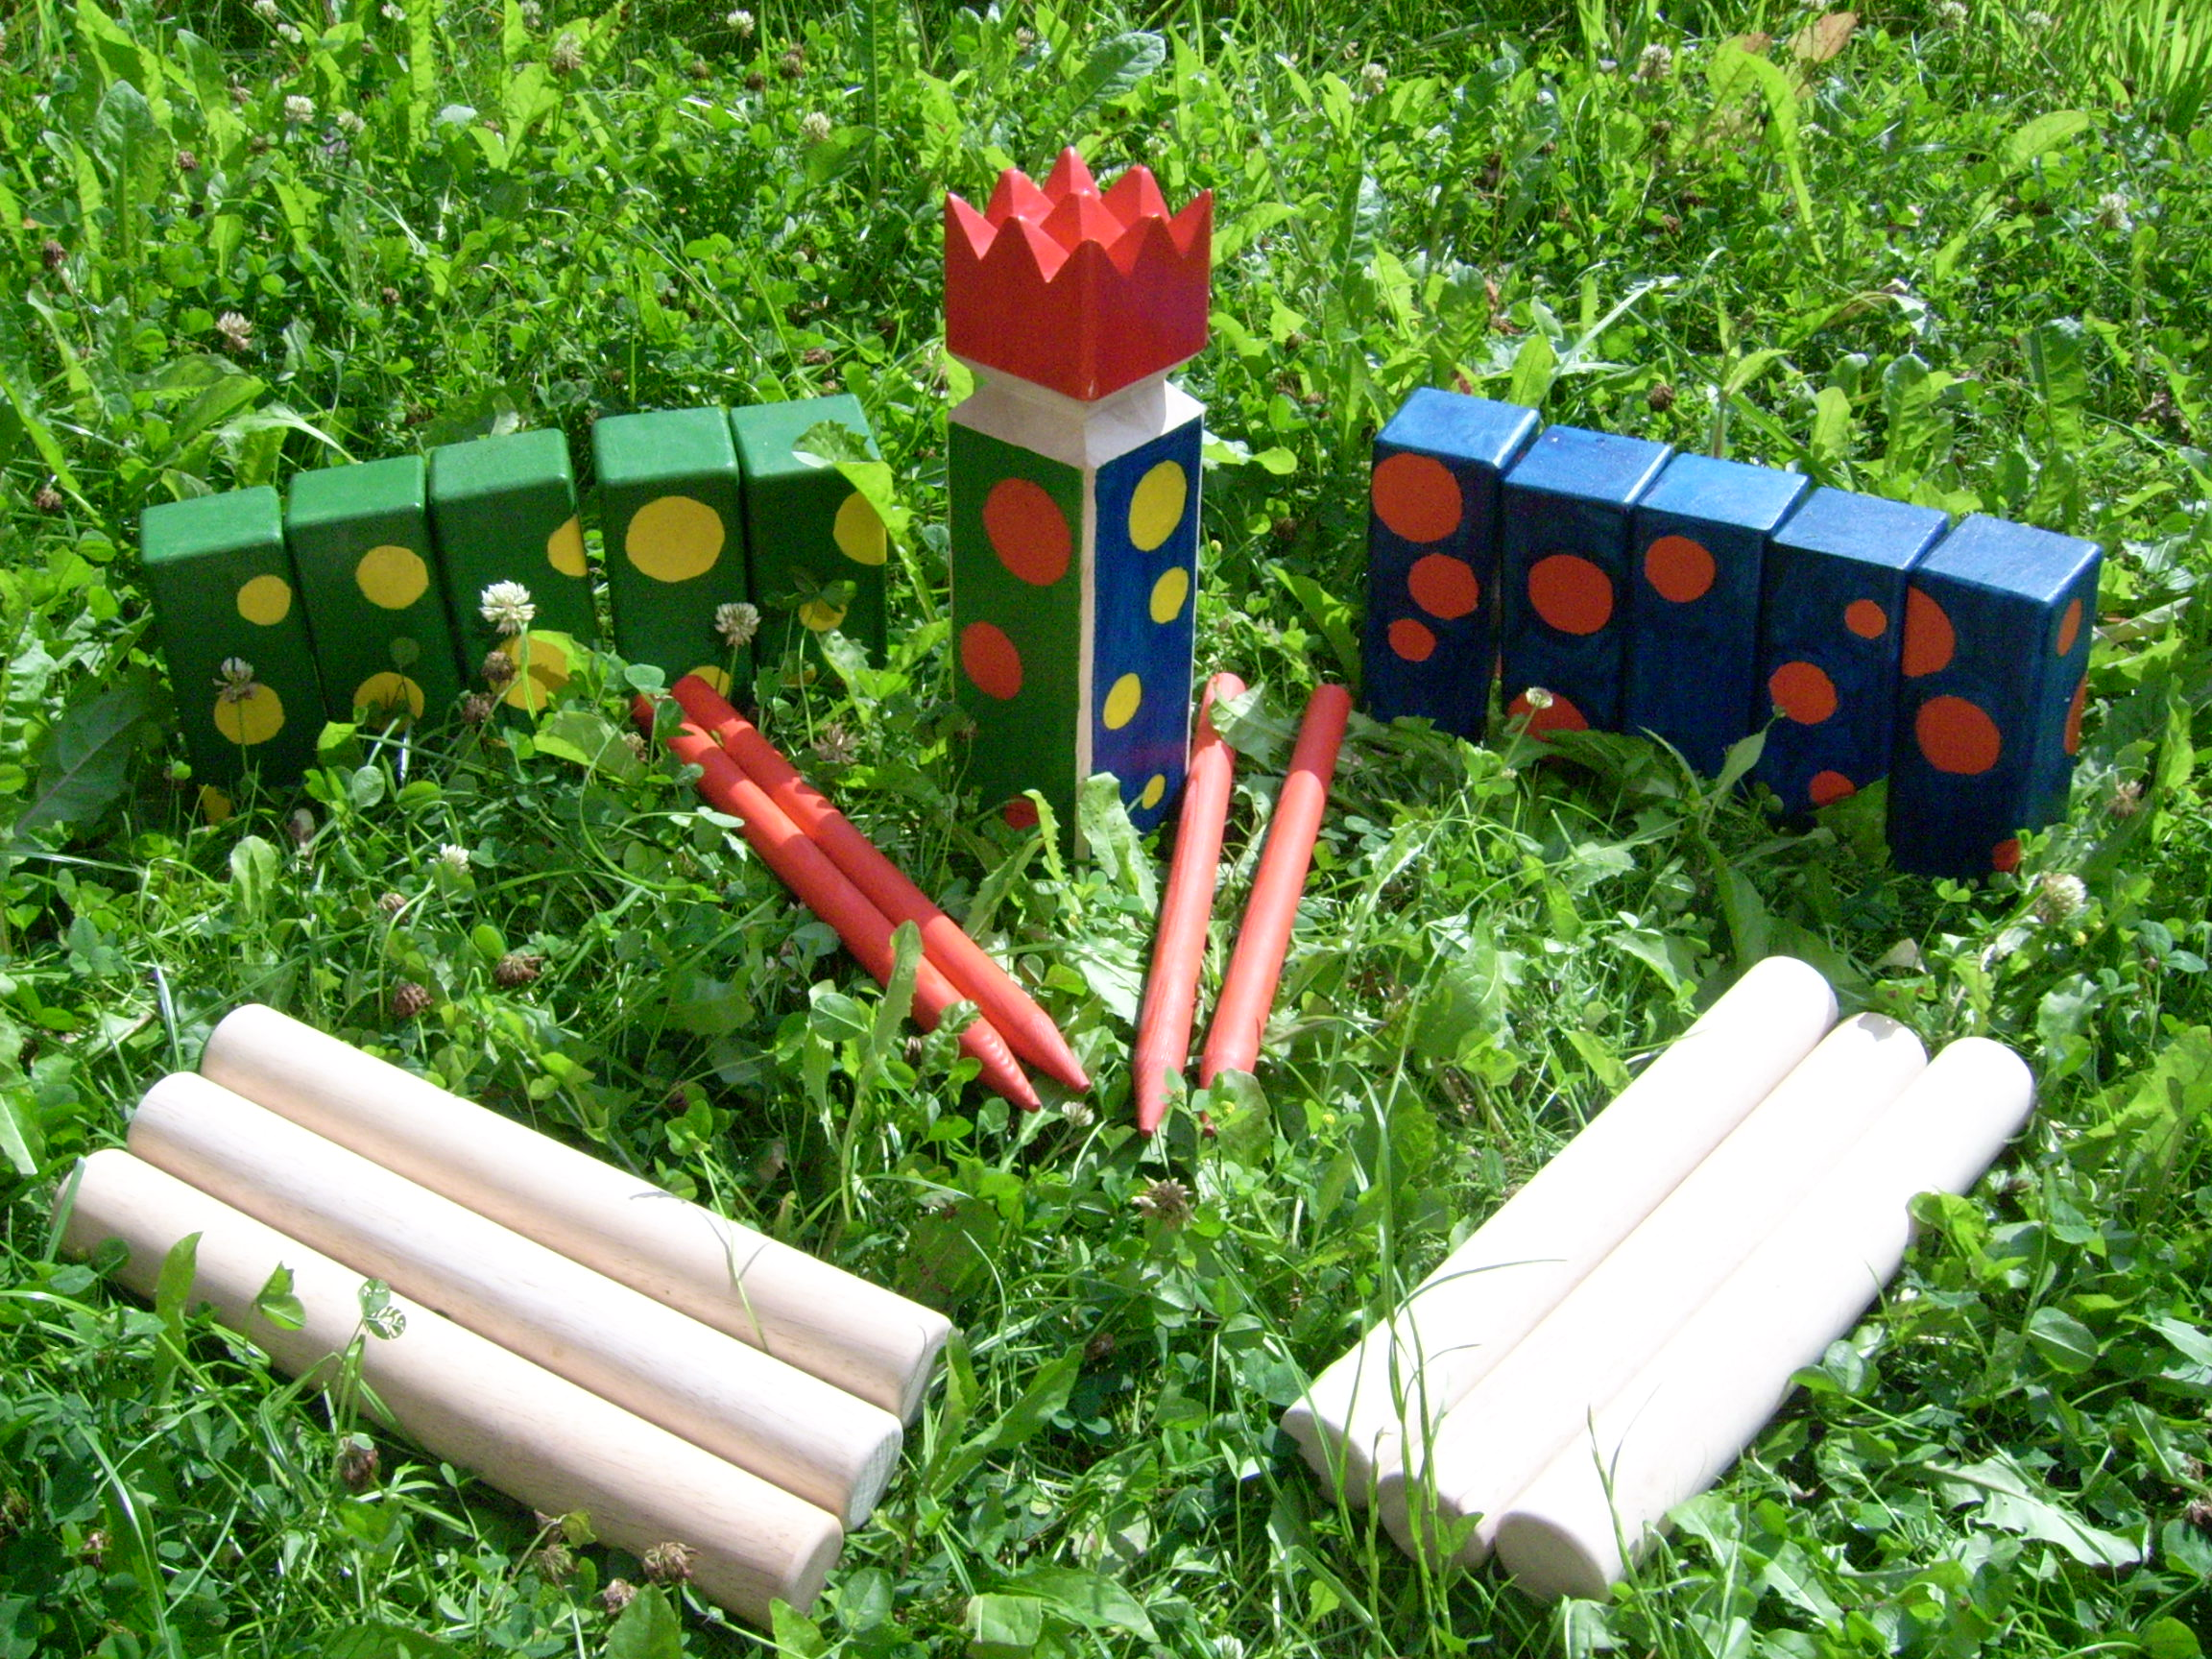 painted-kubb-set